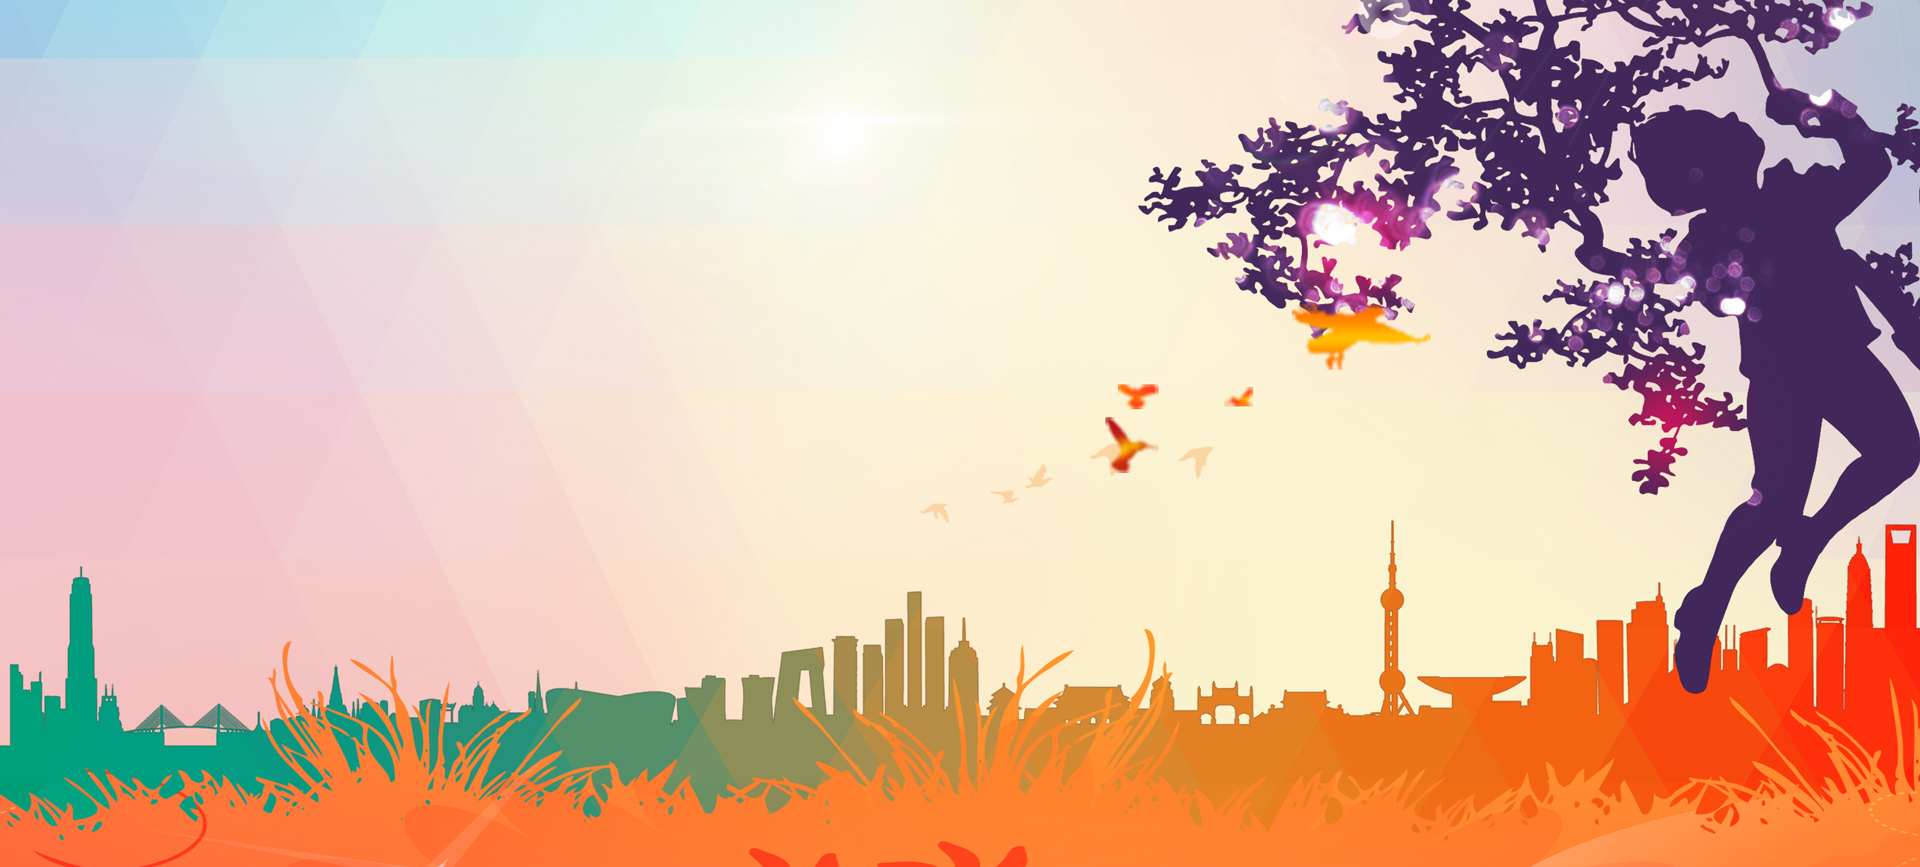 silhouette map design tree background  art  graphic